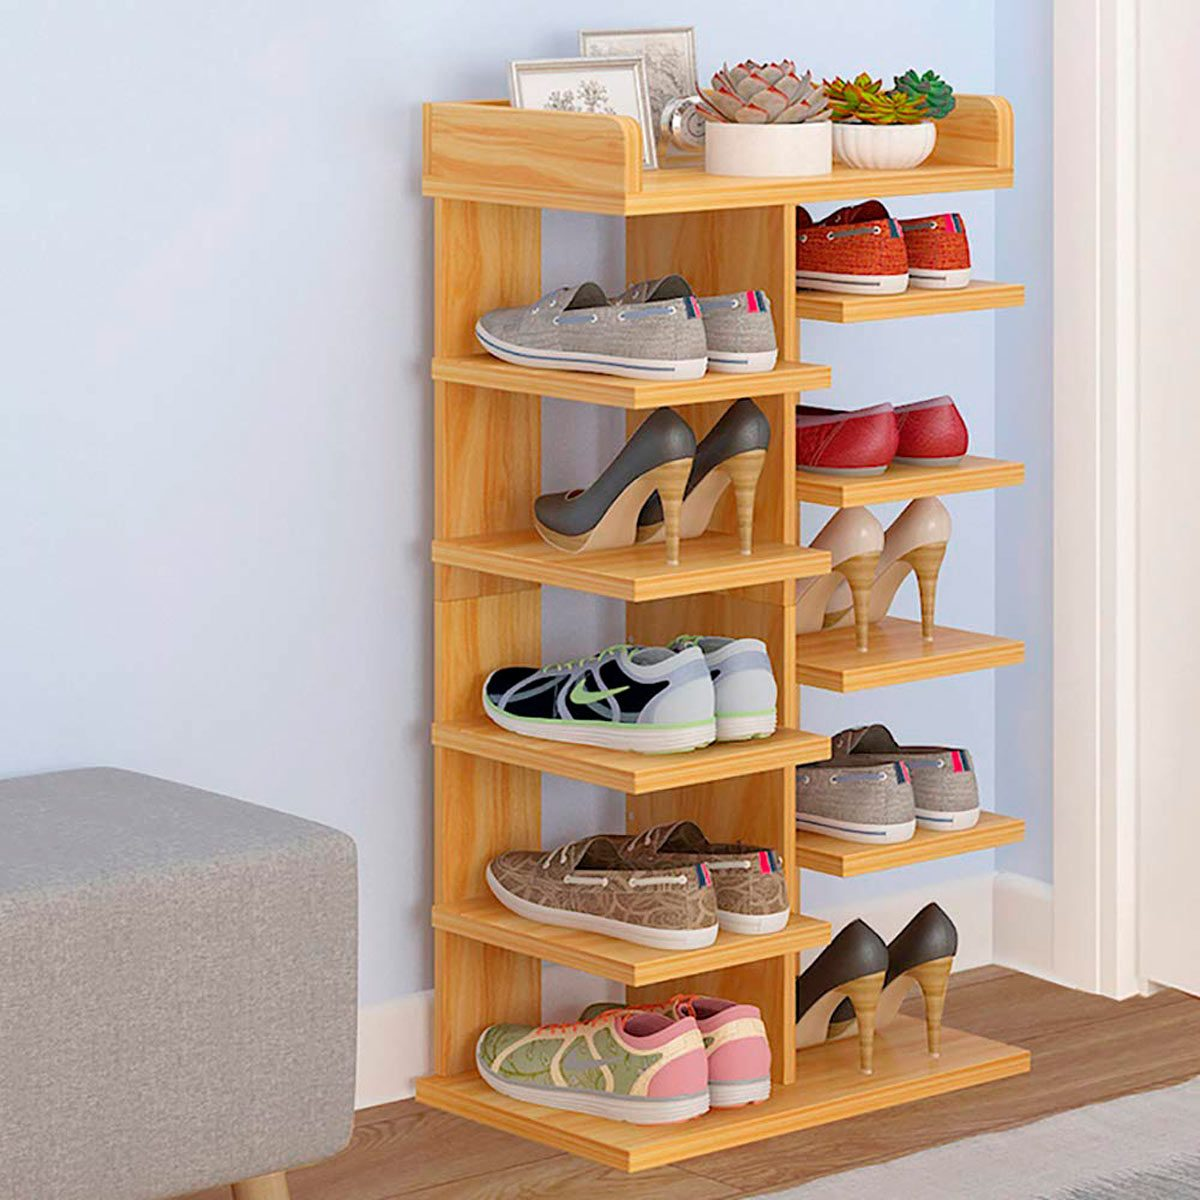 11 Entryway Shoe Storage Hacks That Really Work